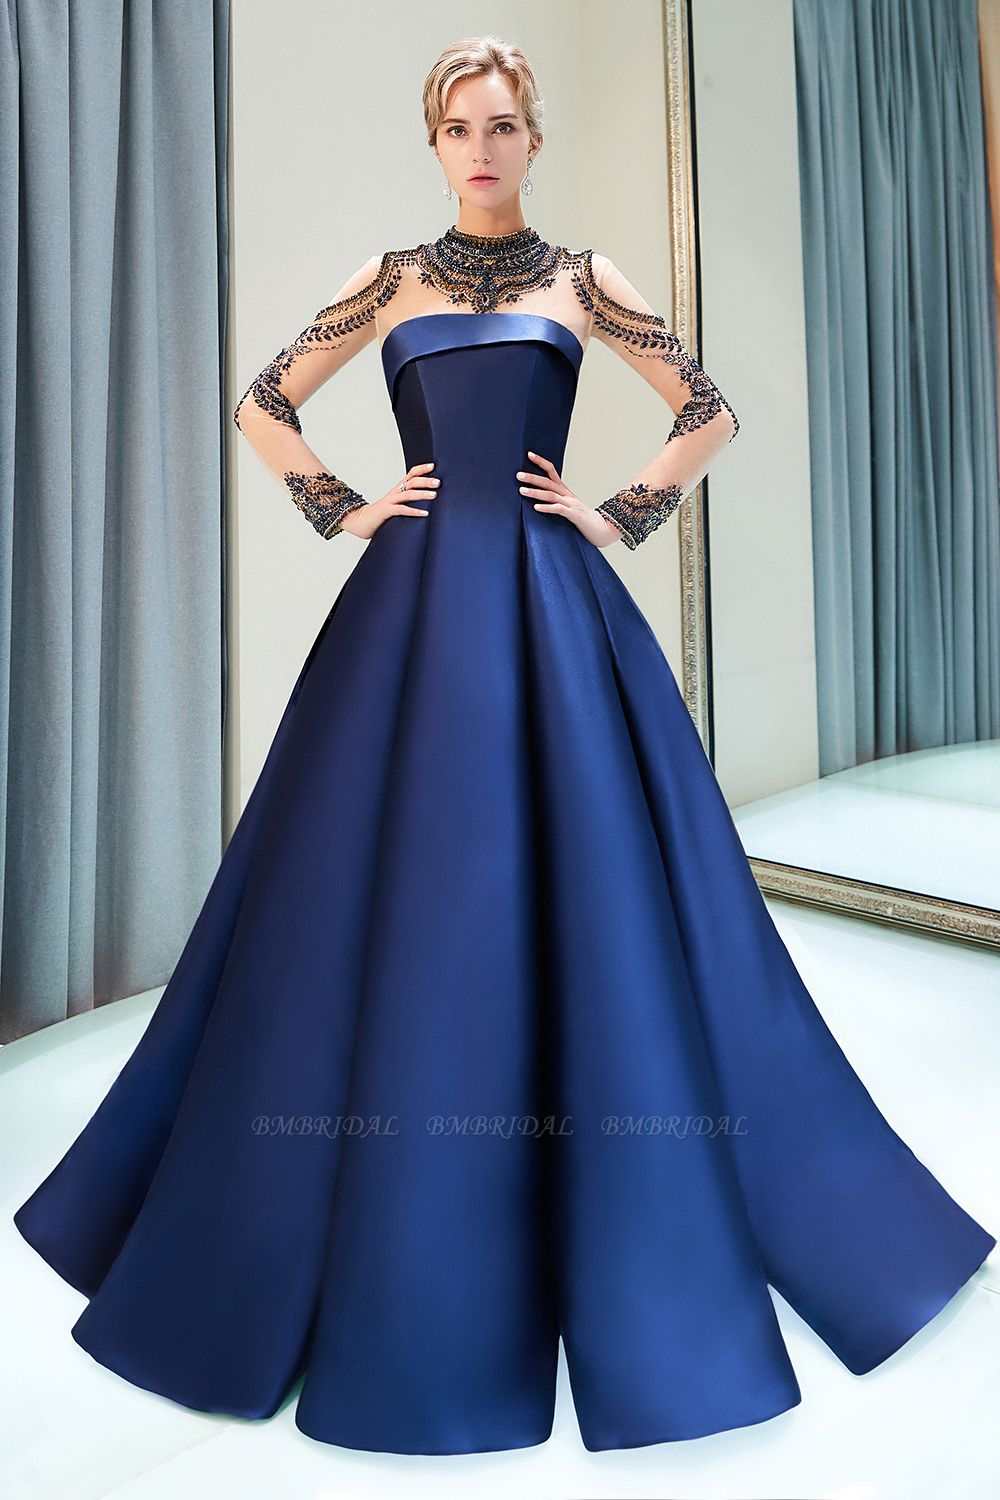 BMbridal Glamorous A-line Long Sleeves Prom Dresses Beading Neckline Satin Evening Gowns On Sale